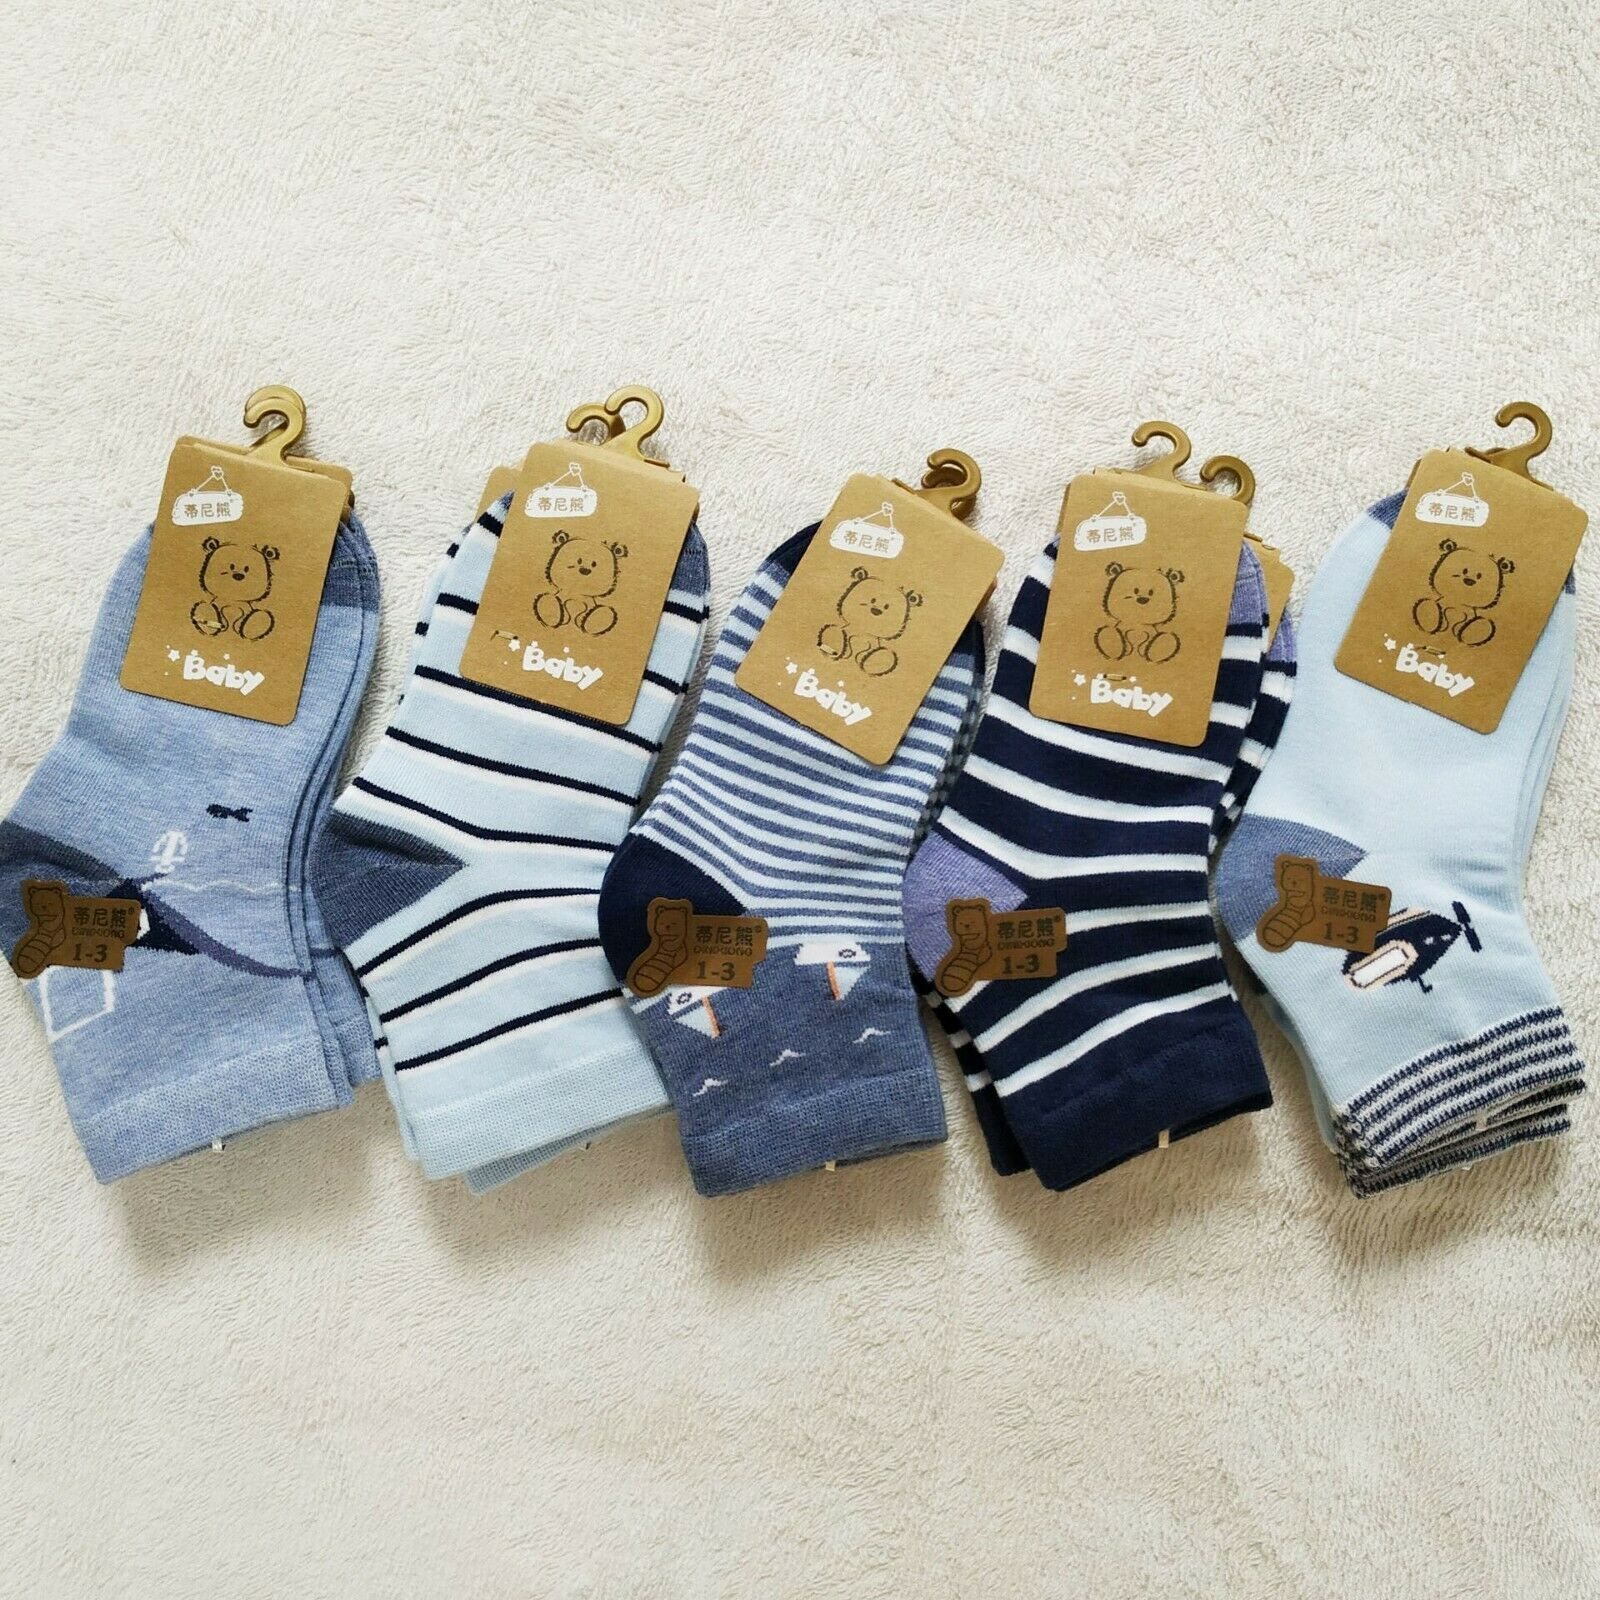 5 Pairs/Lot Cotton Children Socks Boy Socks Girl Socks Cute Cartoon Stripes Spring Autumn Summer